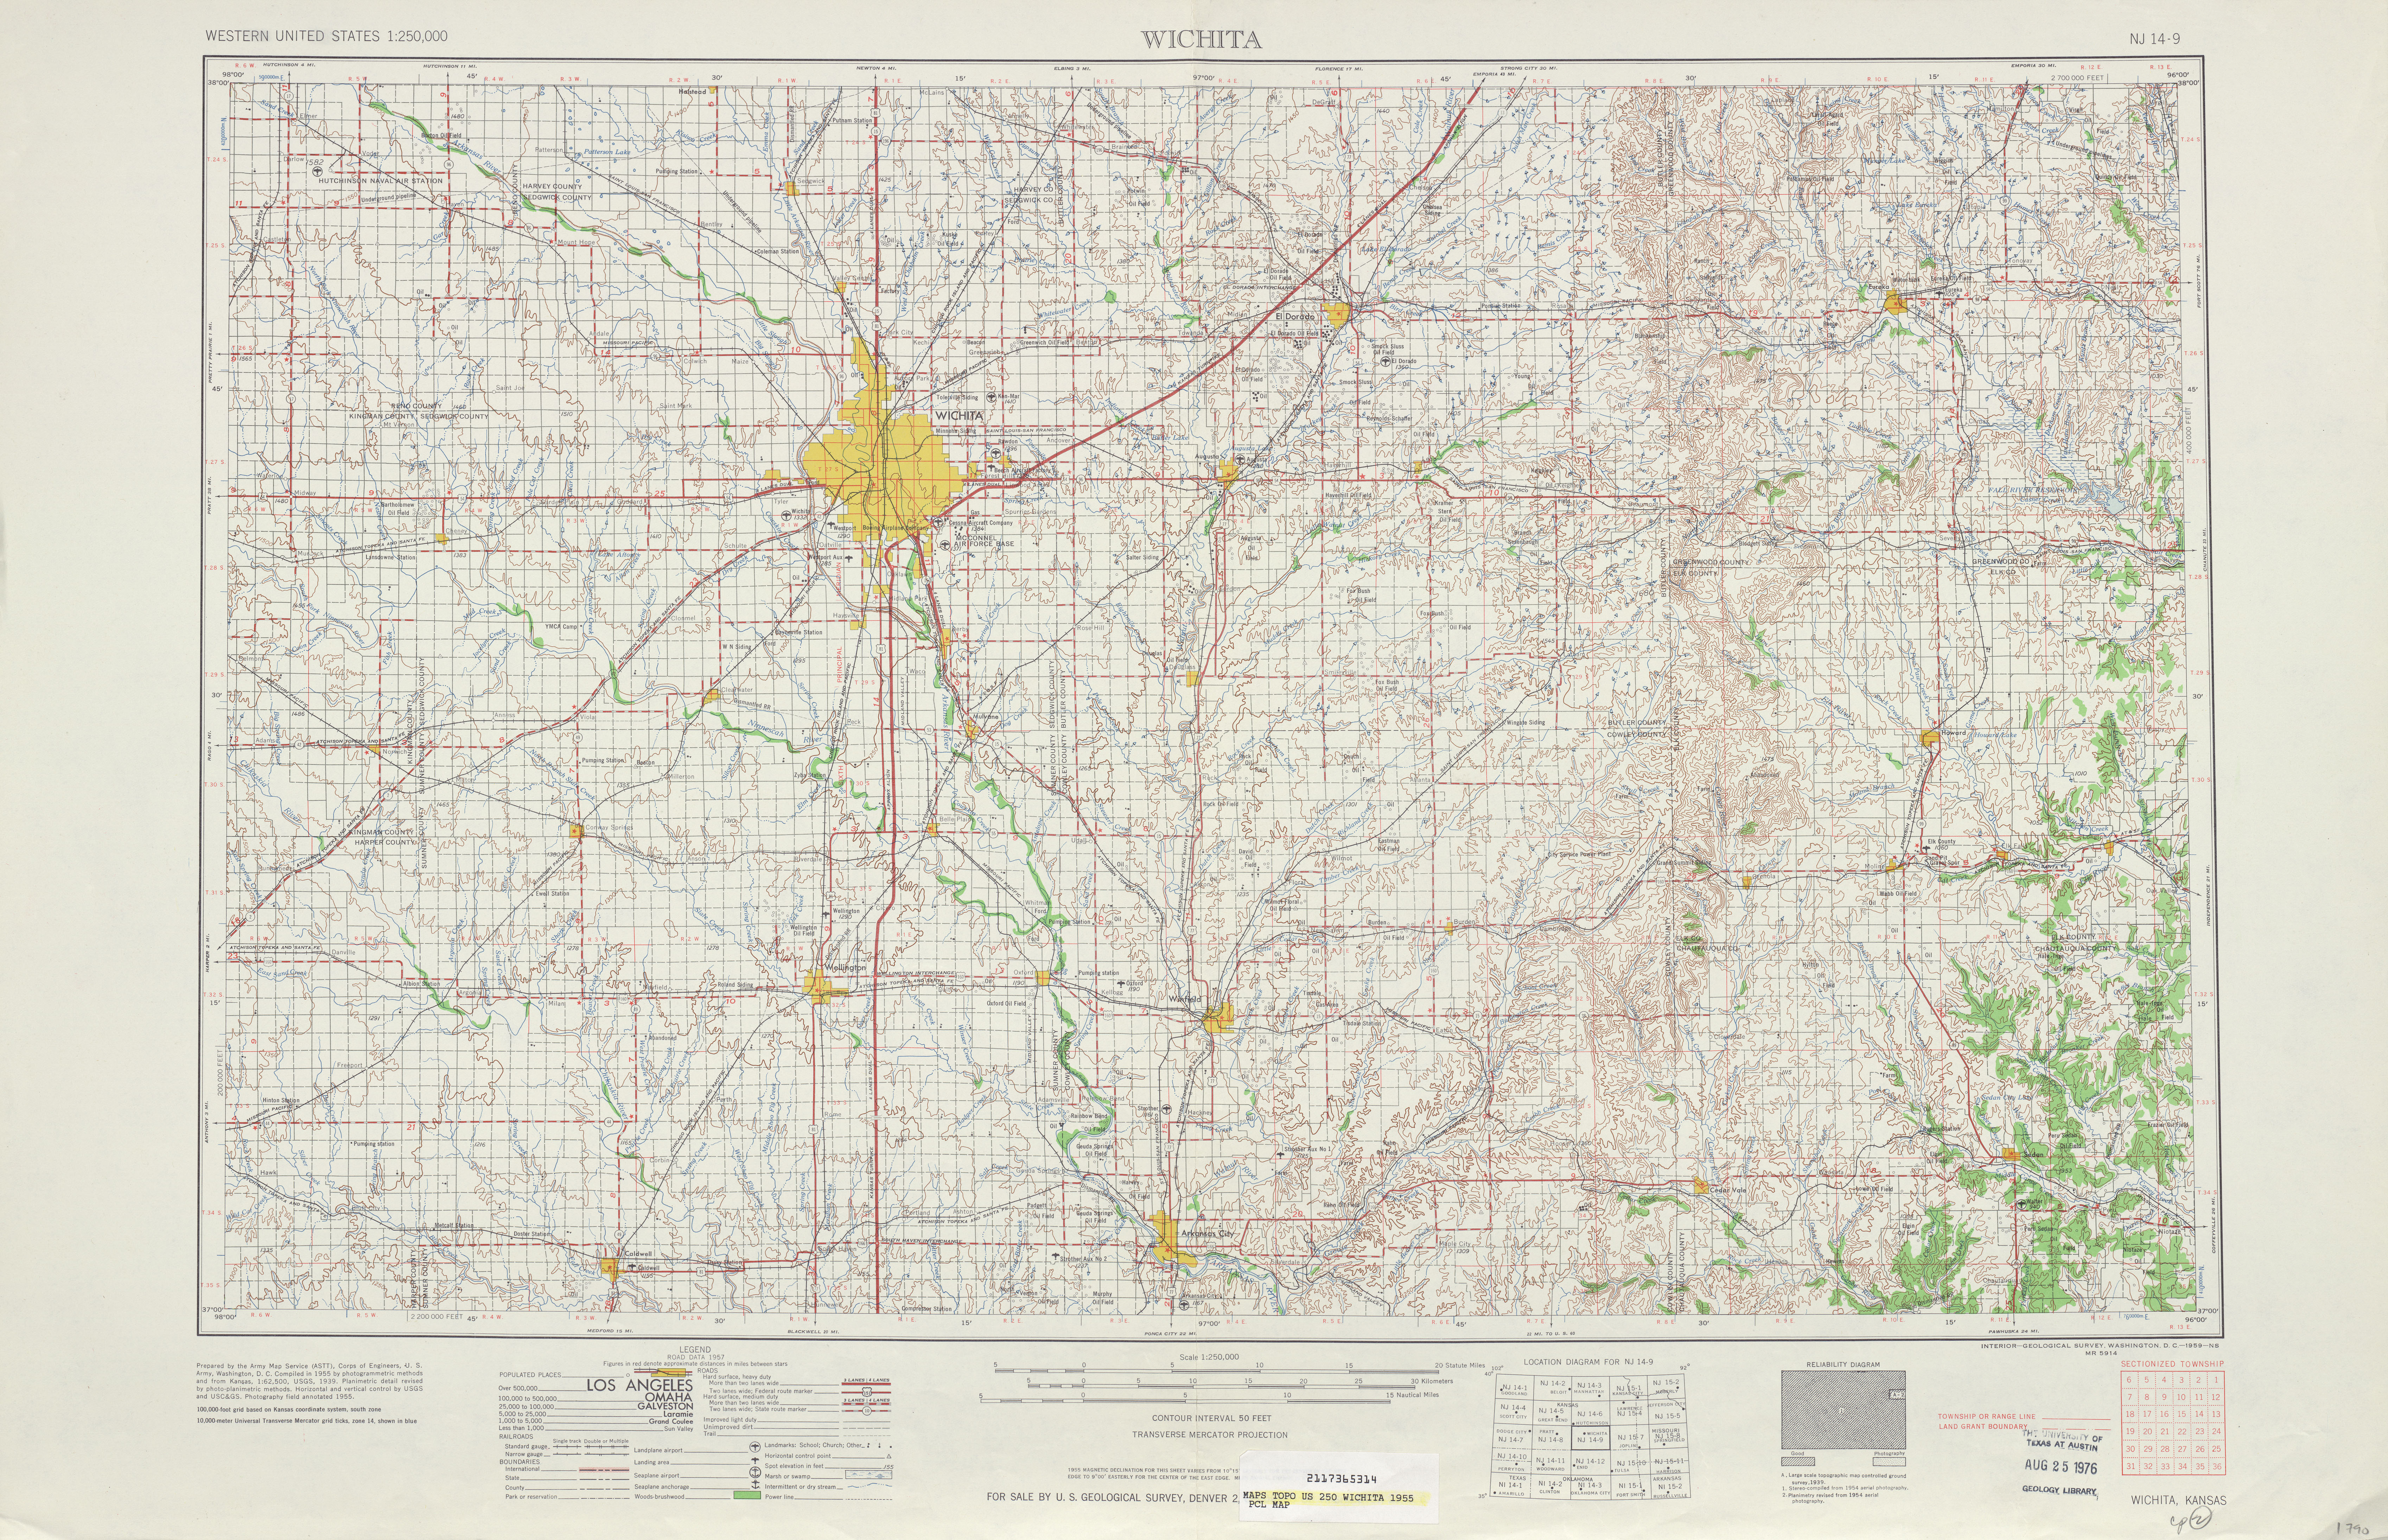 Wichita Topographic Map Sheet, United States 1955